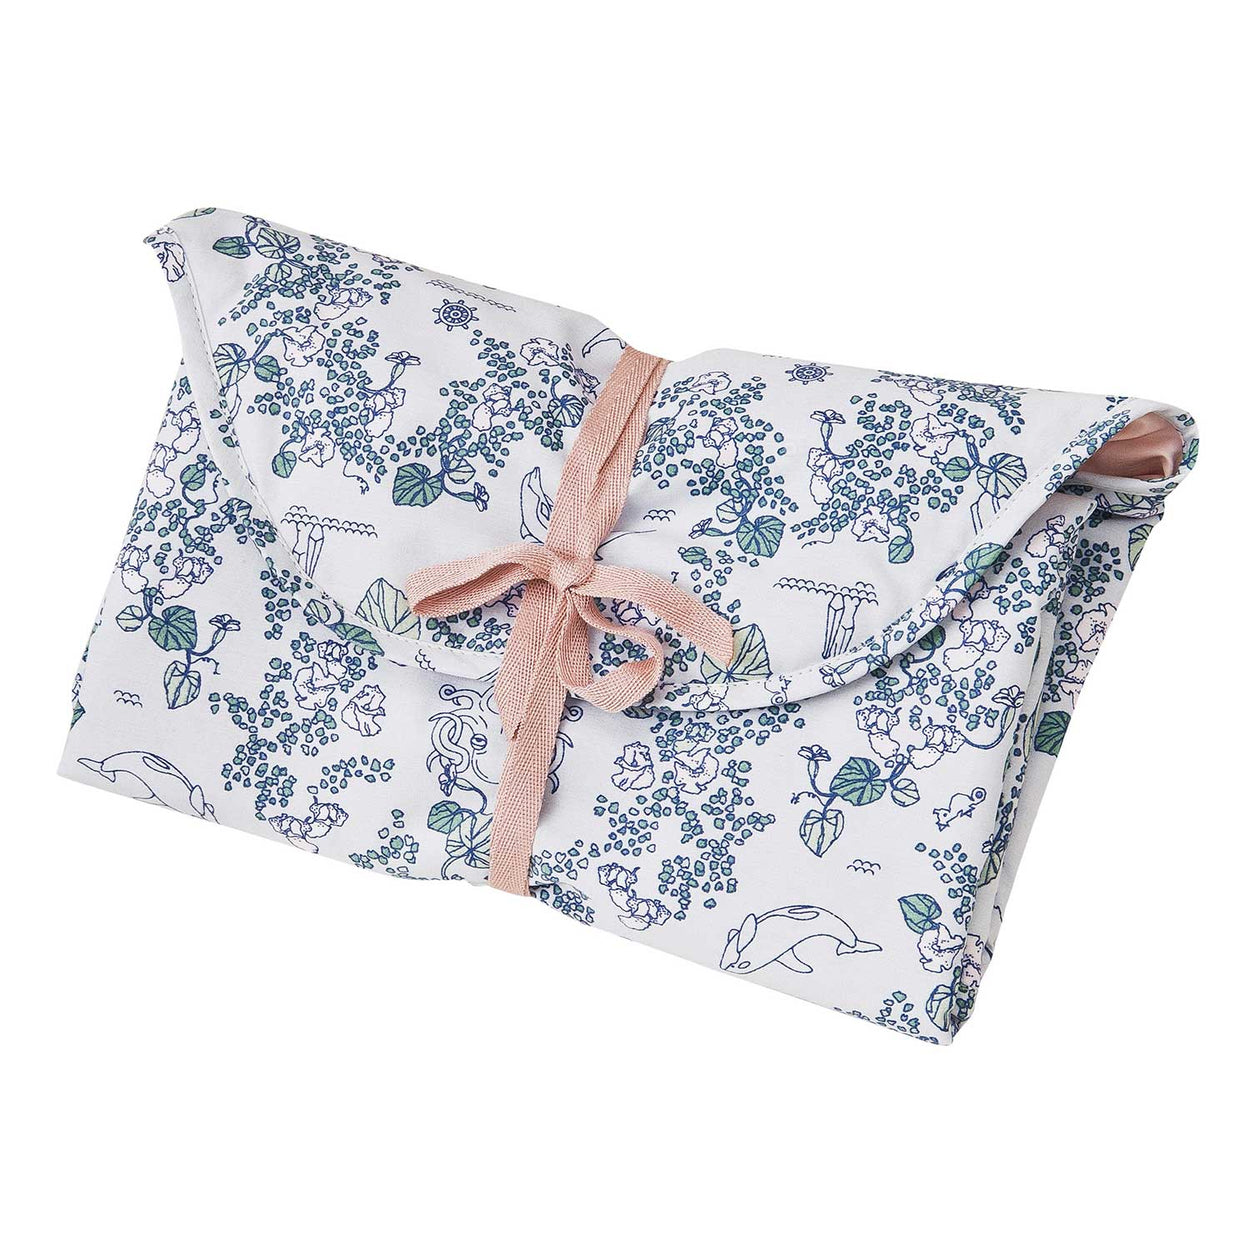 Envelope bag, folding changing mat by Garbo&Friends, in pink and grey